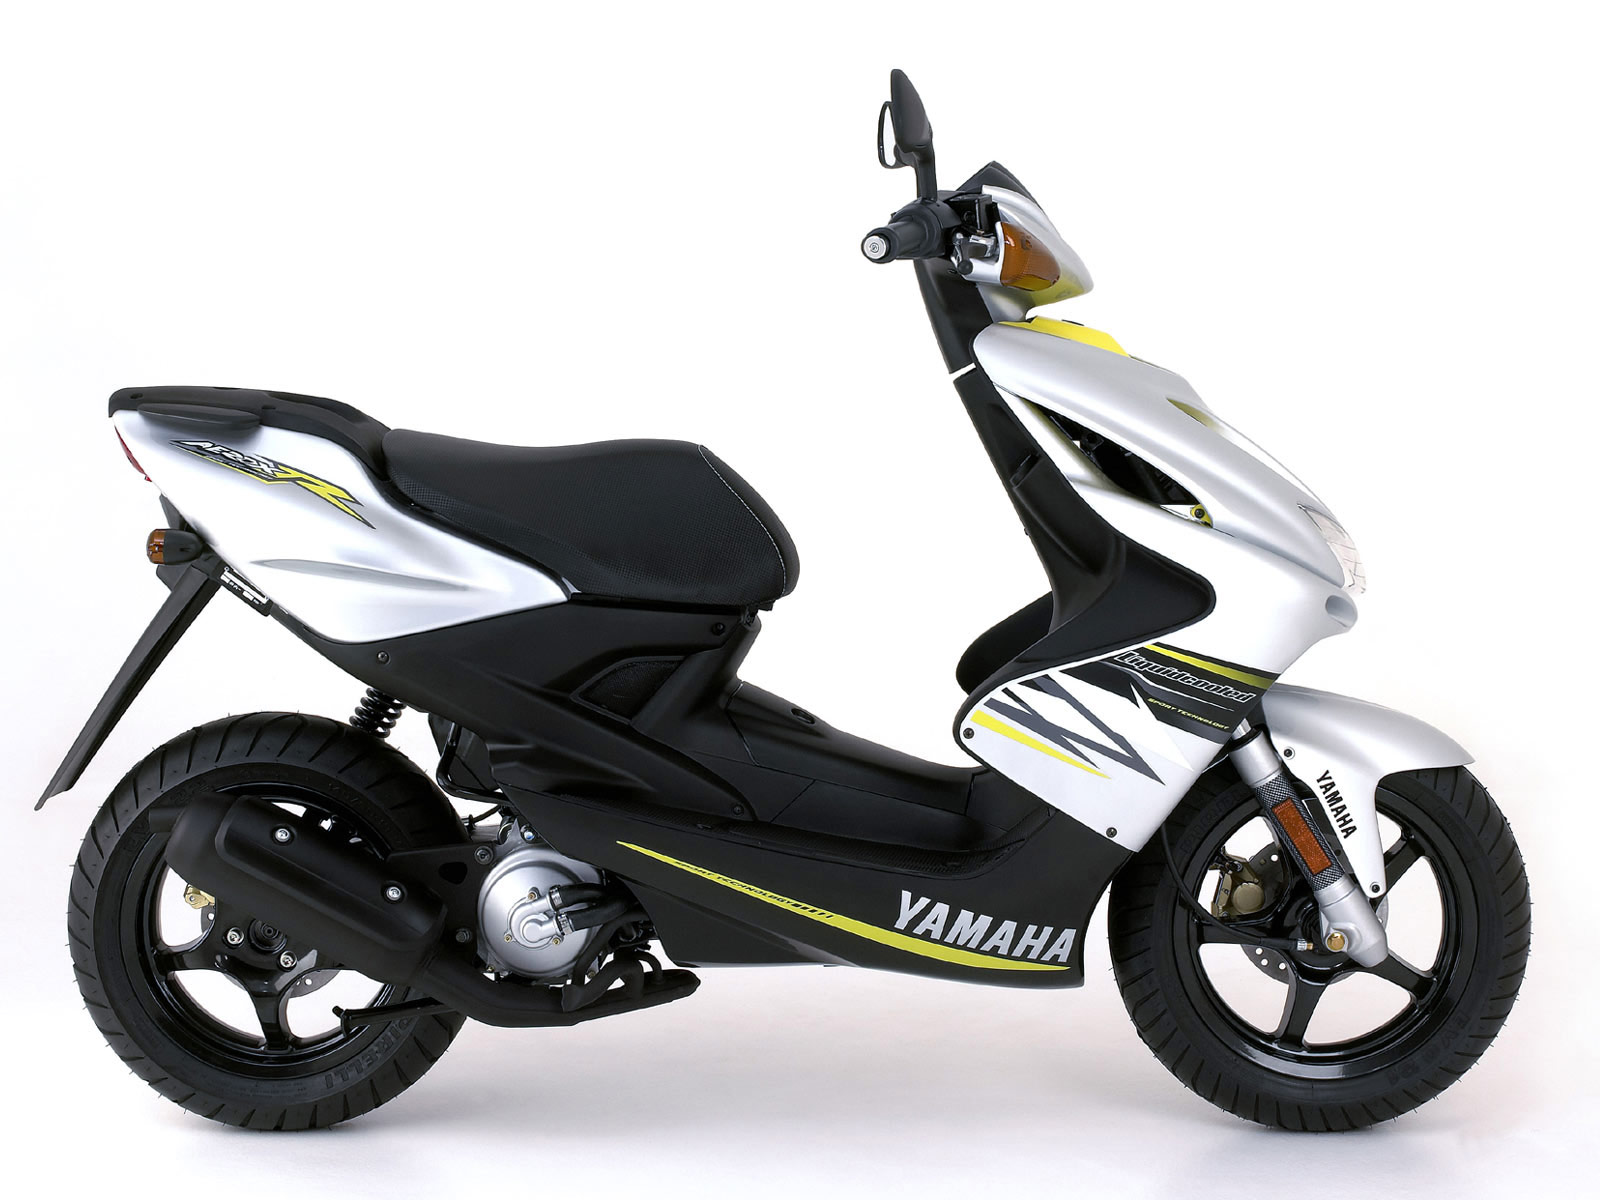 2006 yamaha yq 50 aerox r pictures. Black Bedroom Furniture Sets. Home Design Ideas